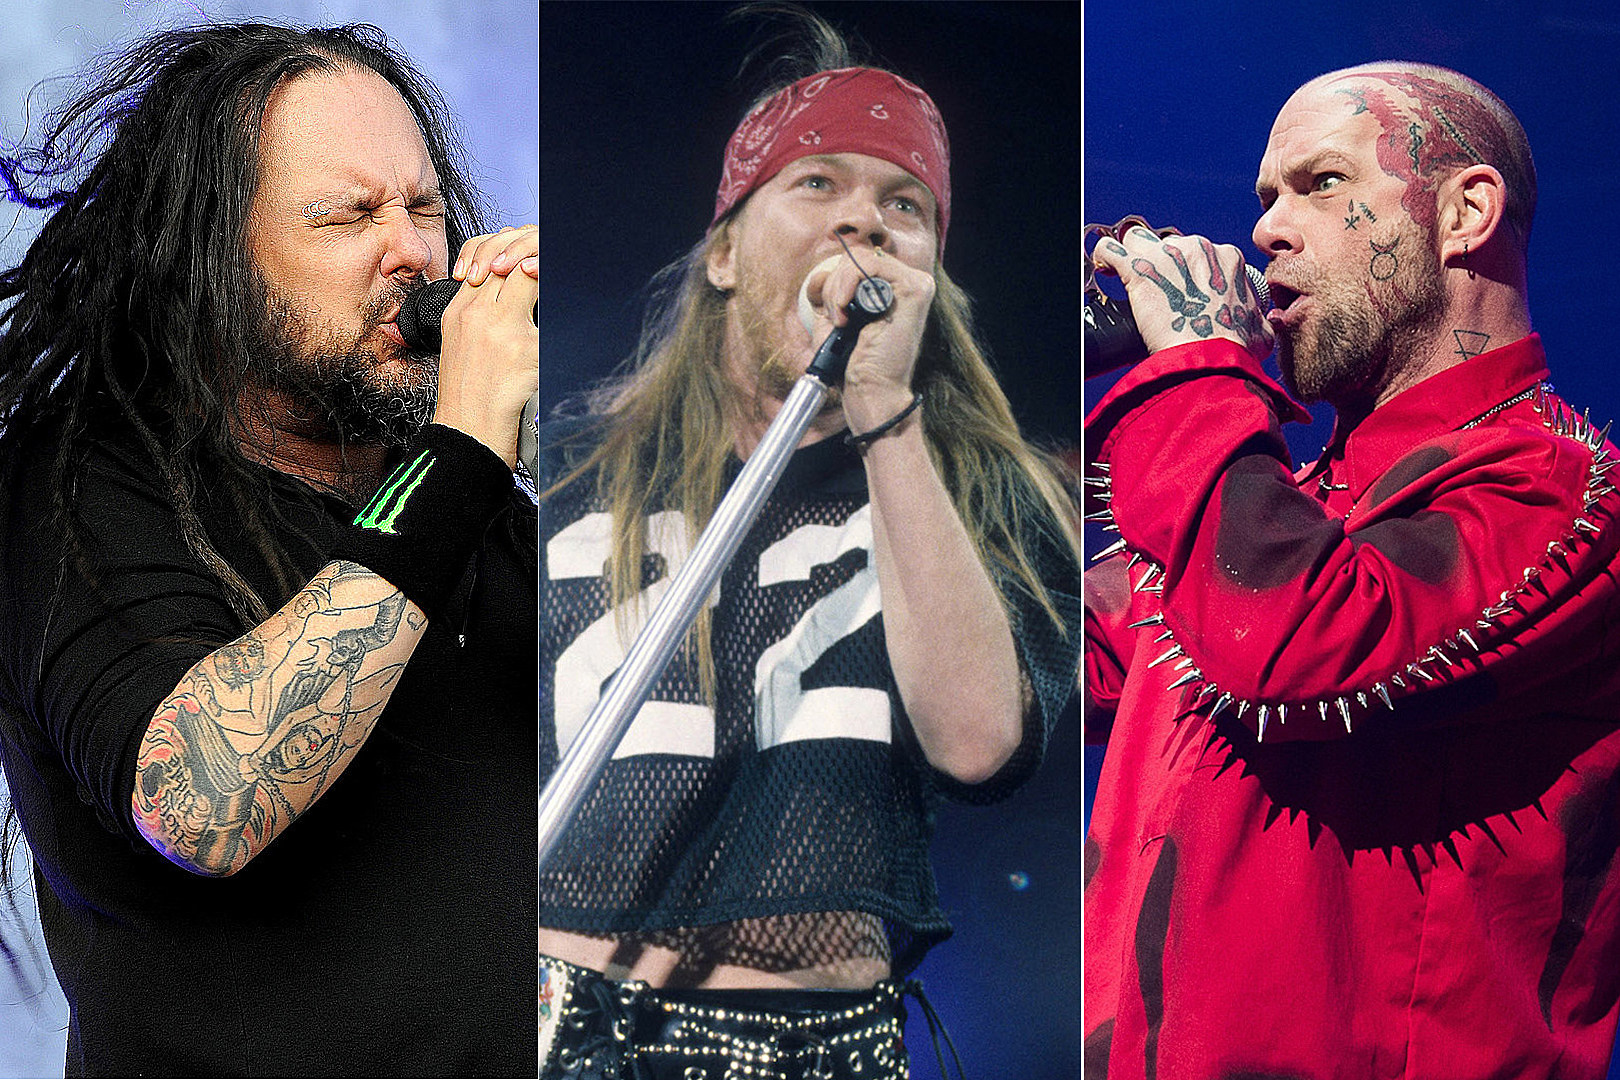 Poll: What's the Best Rock + Metal Cover Song? - Vote Now